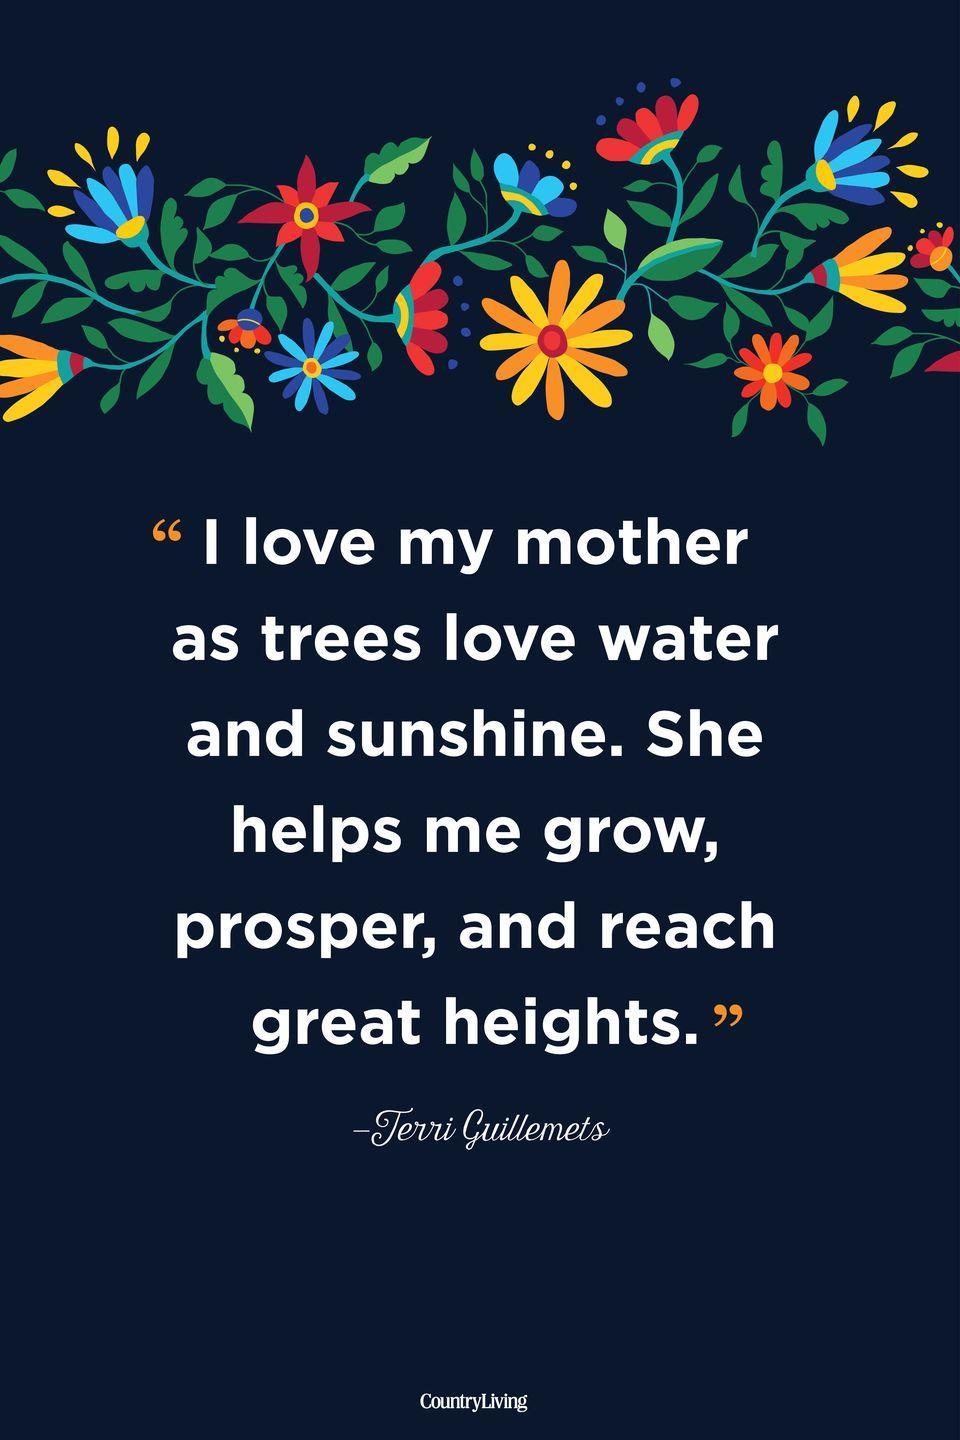 """<p>""""I love my mother as trees love water and sunshine. She helps me grow, prosper, and reach great heights.""""</p>"""